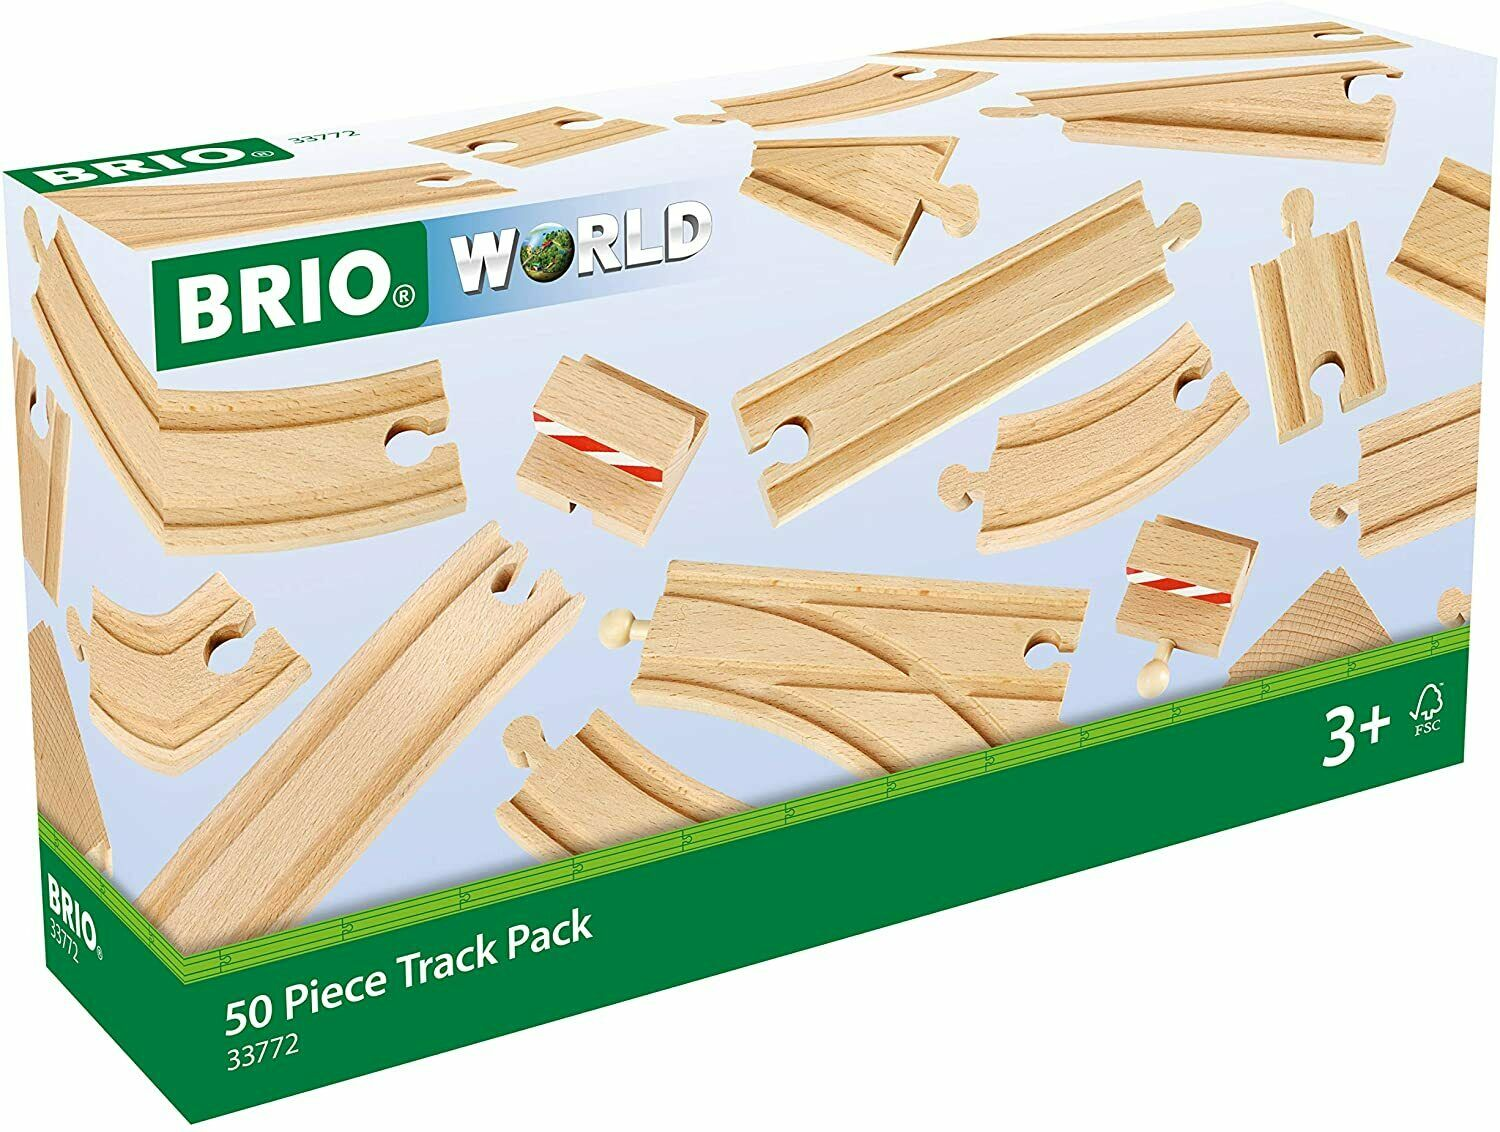 Brio 33772 50 Piece Track Pack 3+ NEW Large / Small Straight